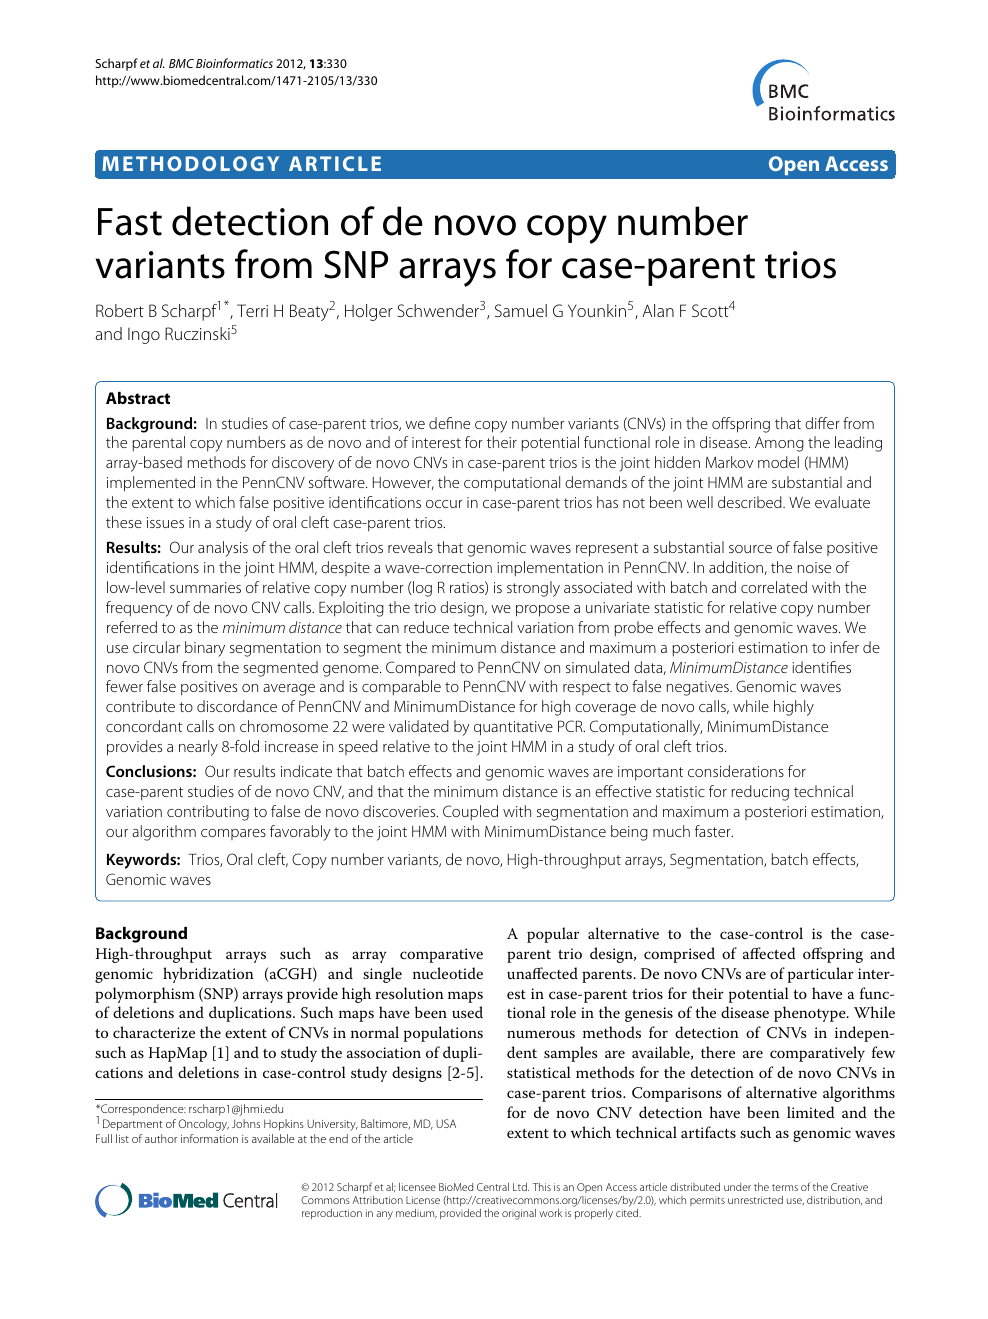 Fast detection of de novo copy number variants from SNP